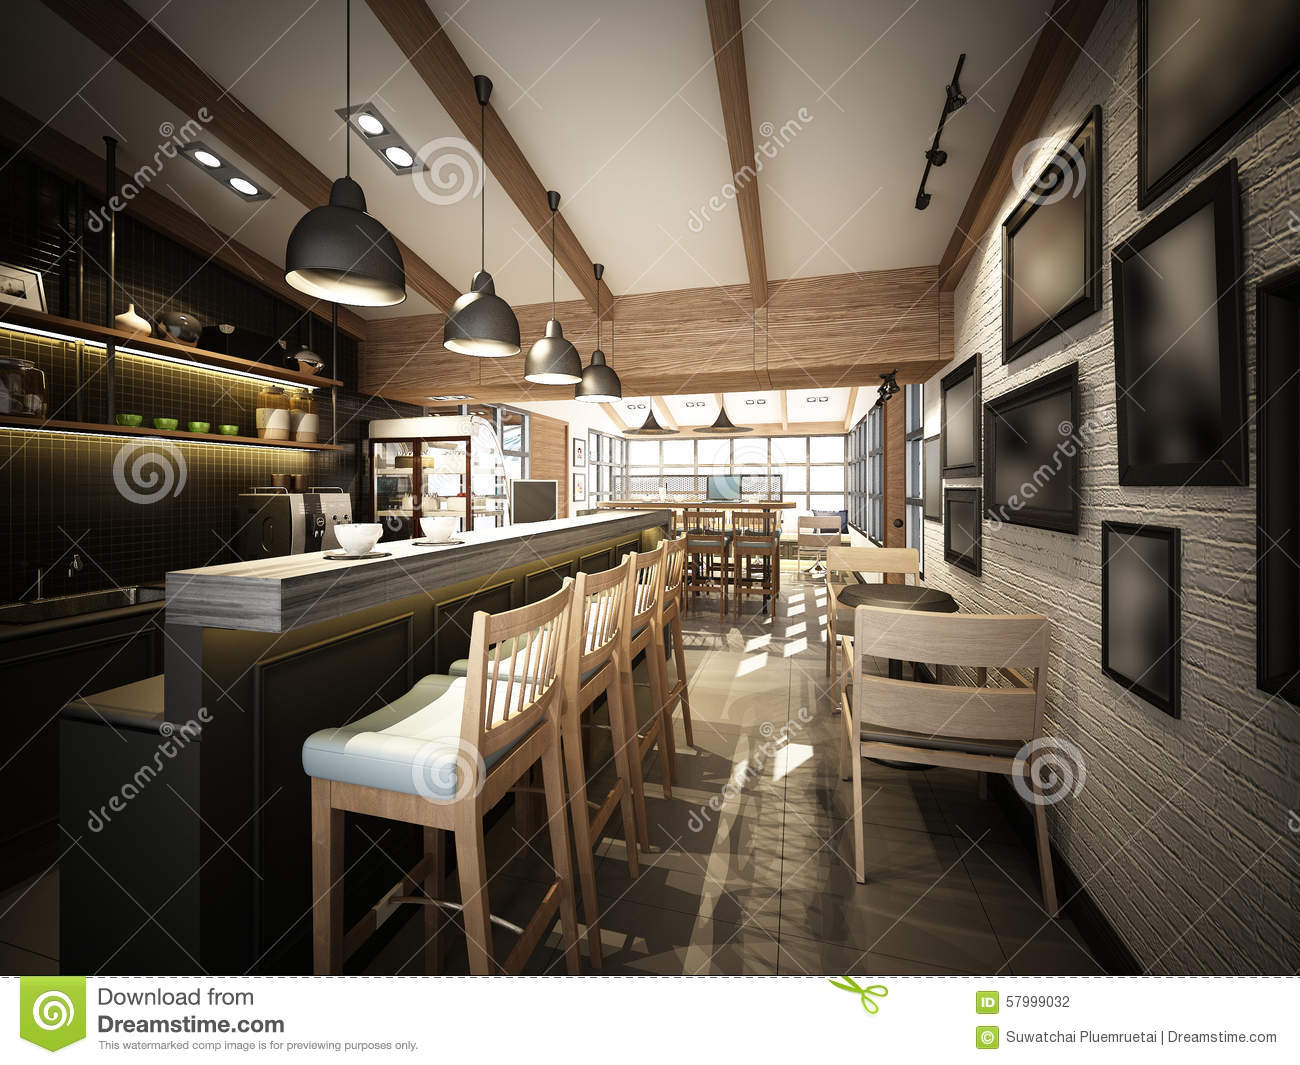 Furniture Design App 3d Render Of Coffee Shop 3dwire Frame Render Stock